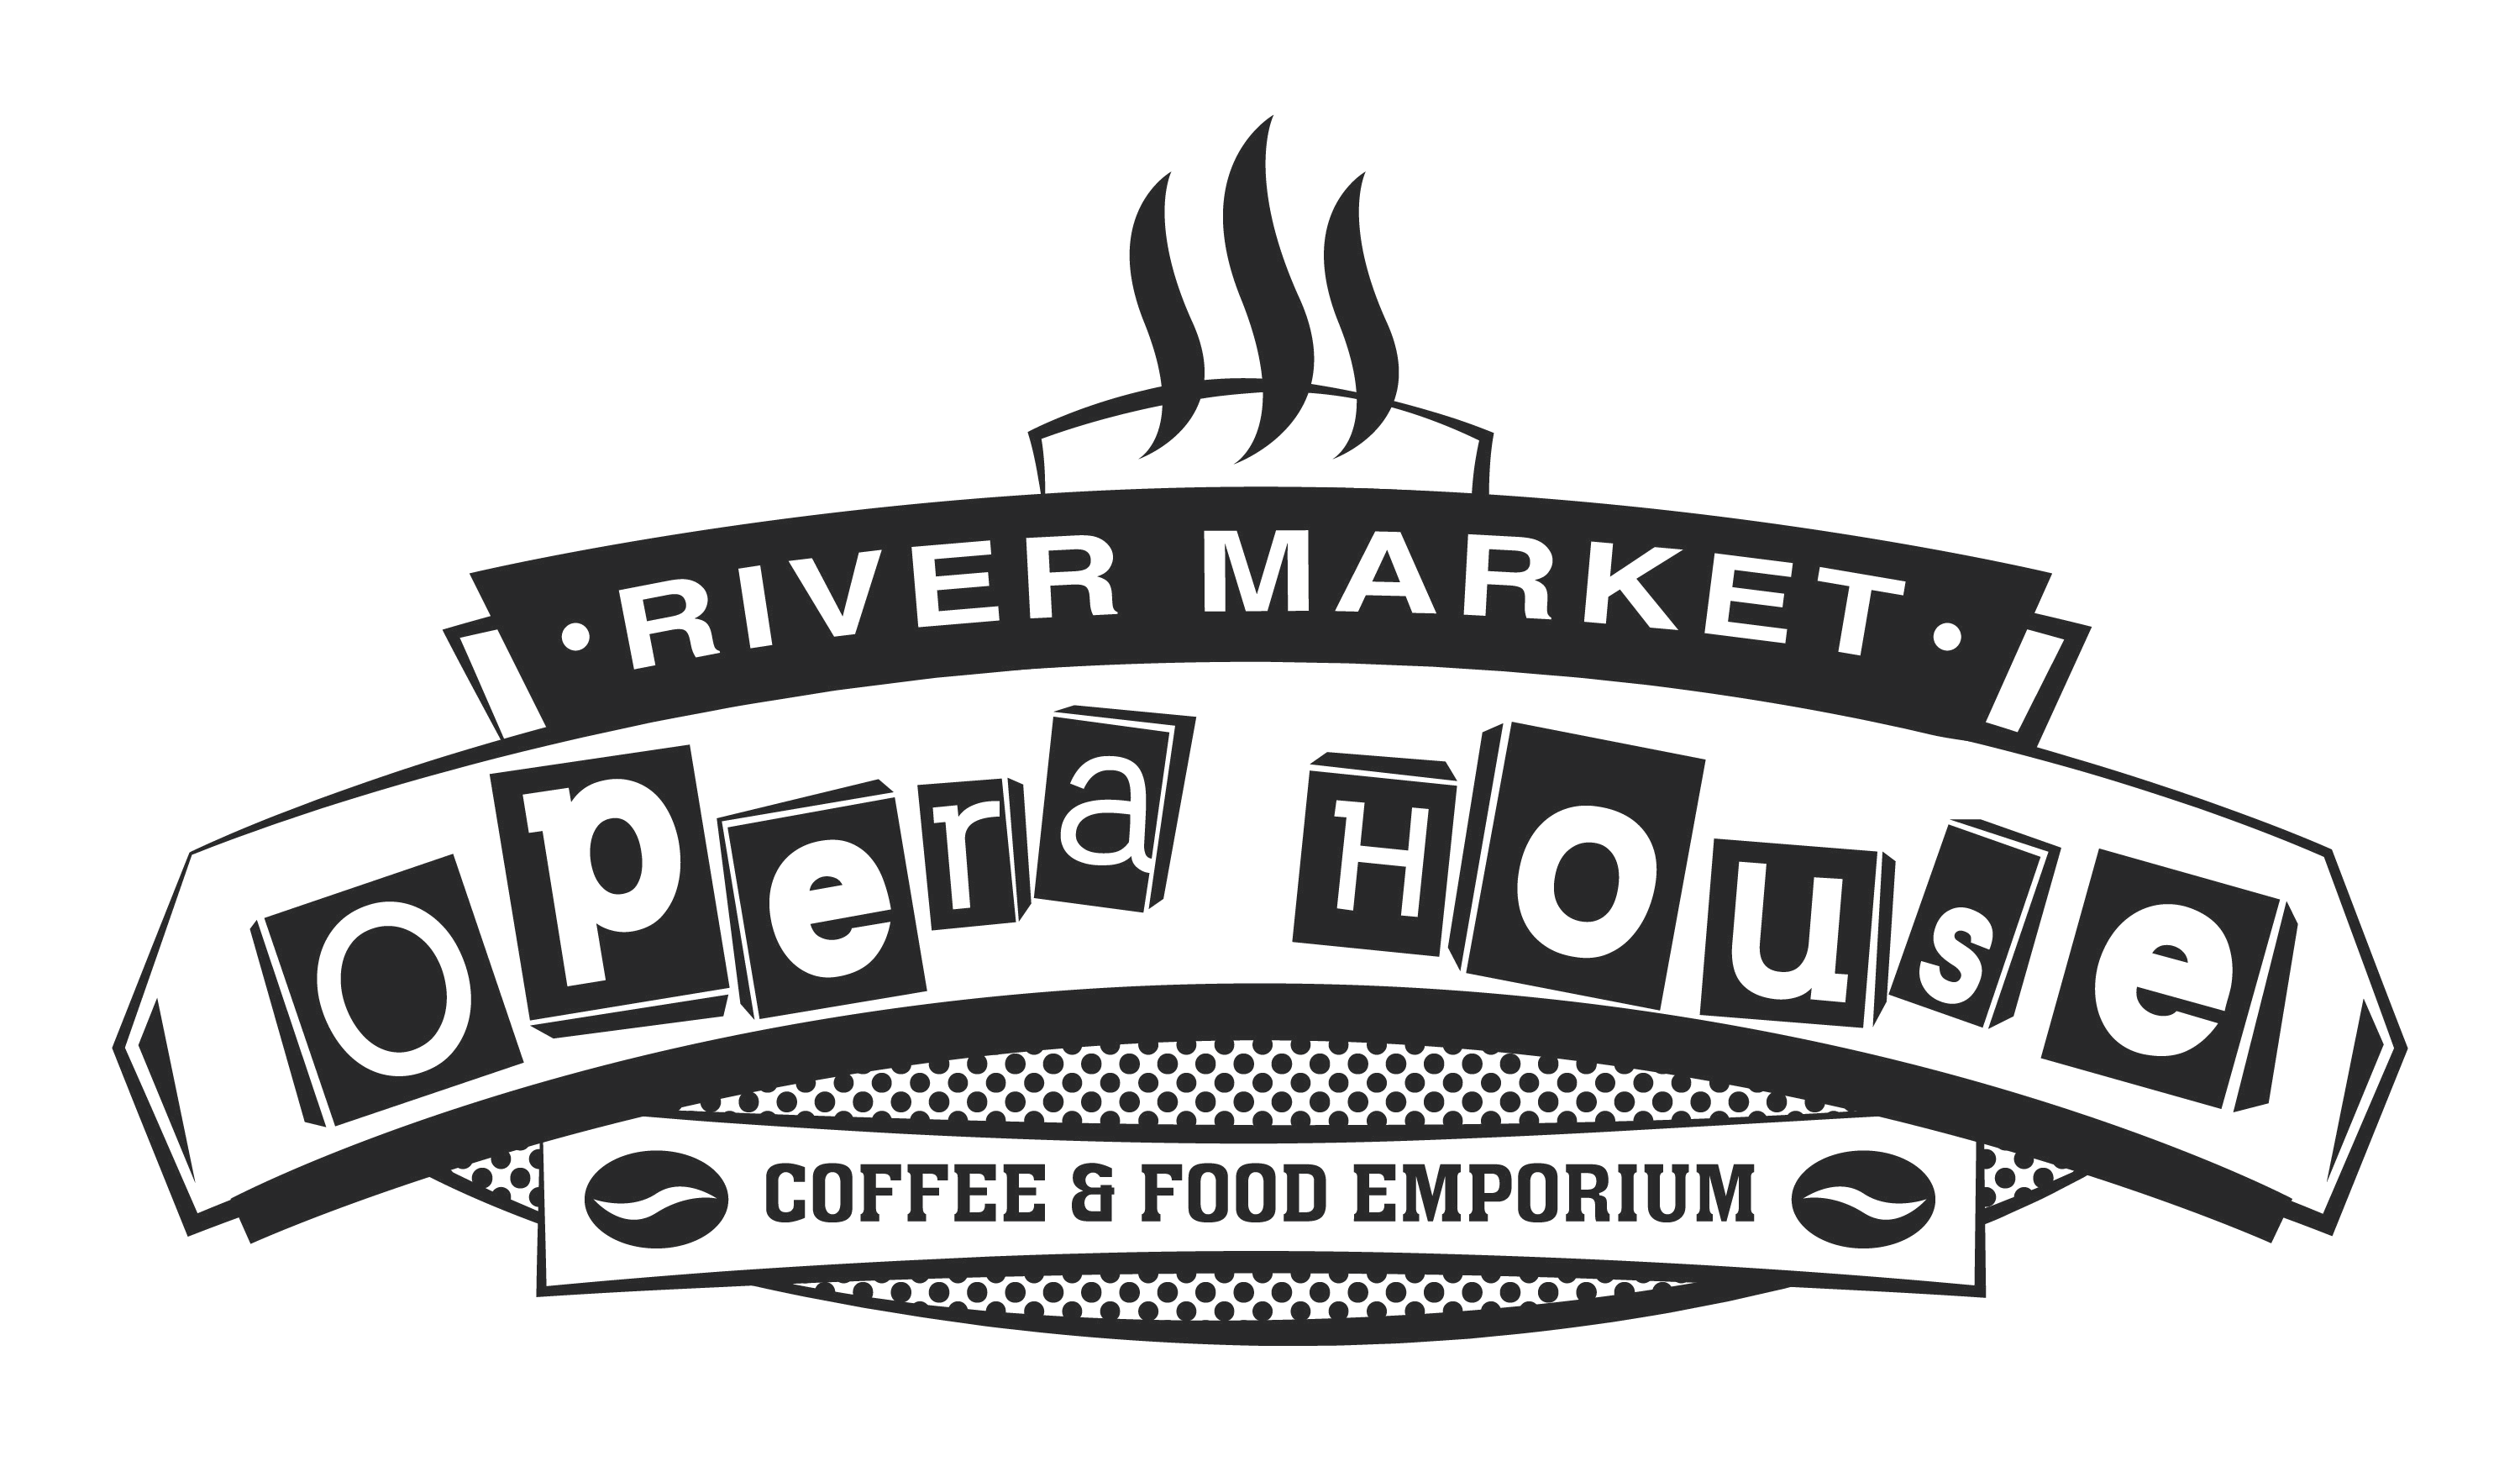 The Opera House | River Market's and Kansas City's Coffee Shop, Breakfast, Lunch, Bar, Bakery, Events Kansas City